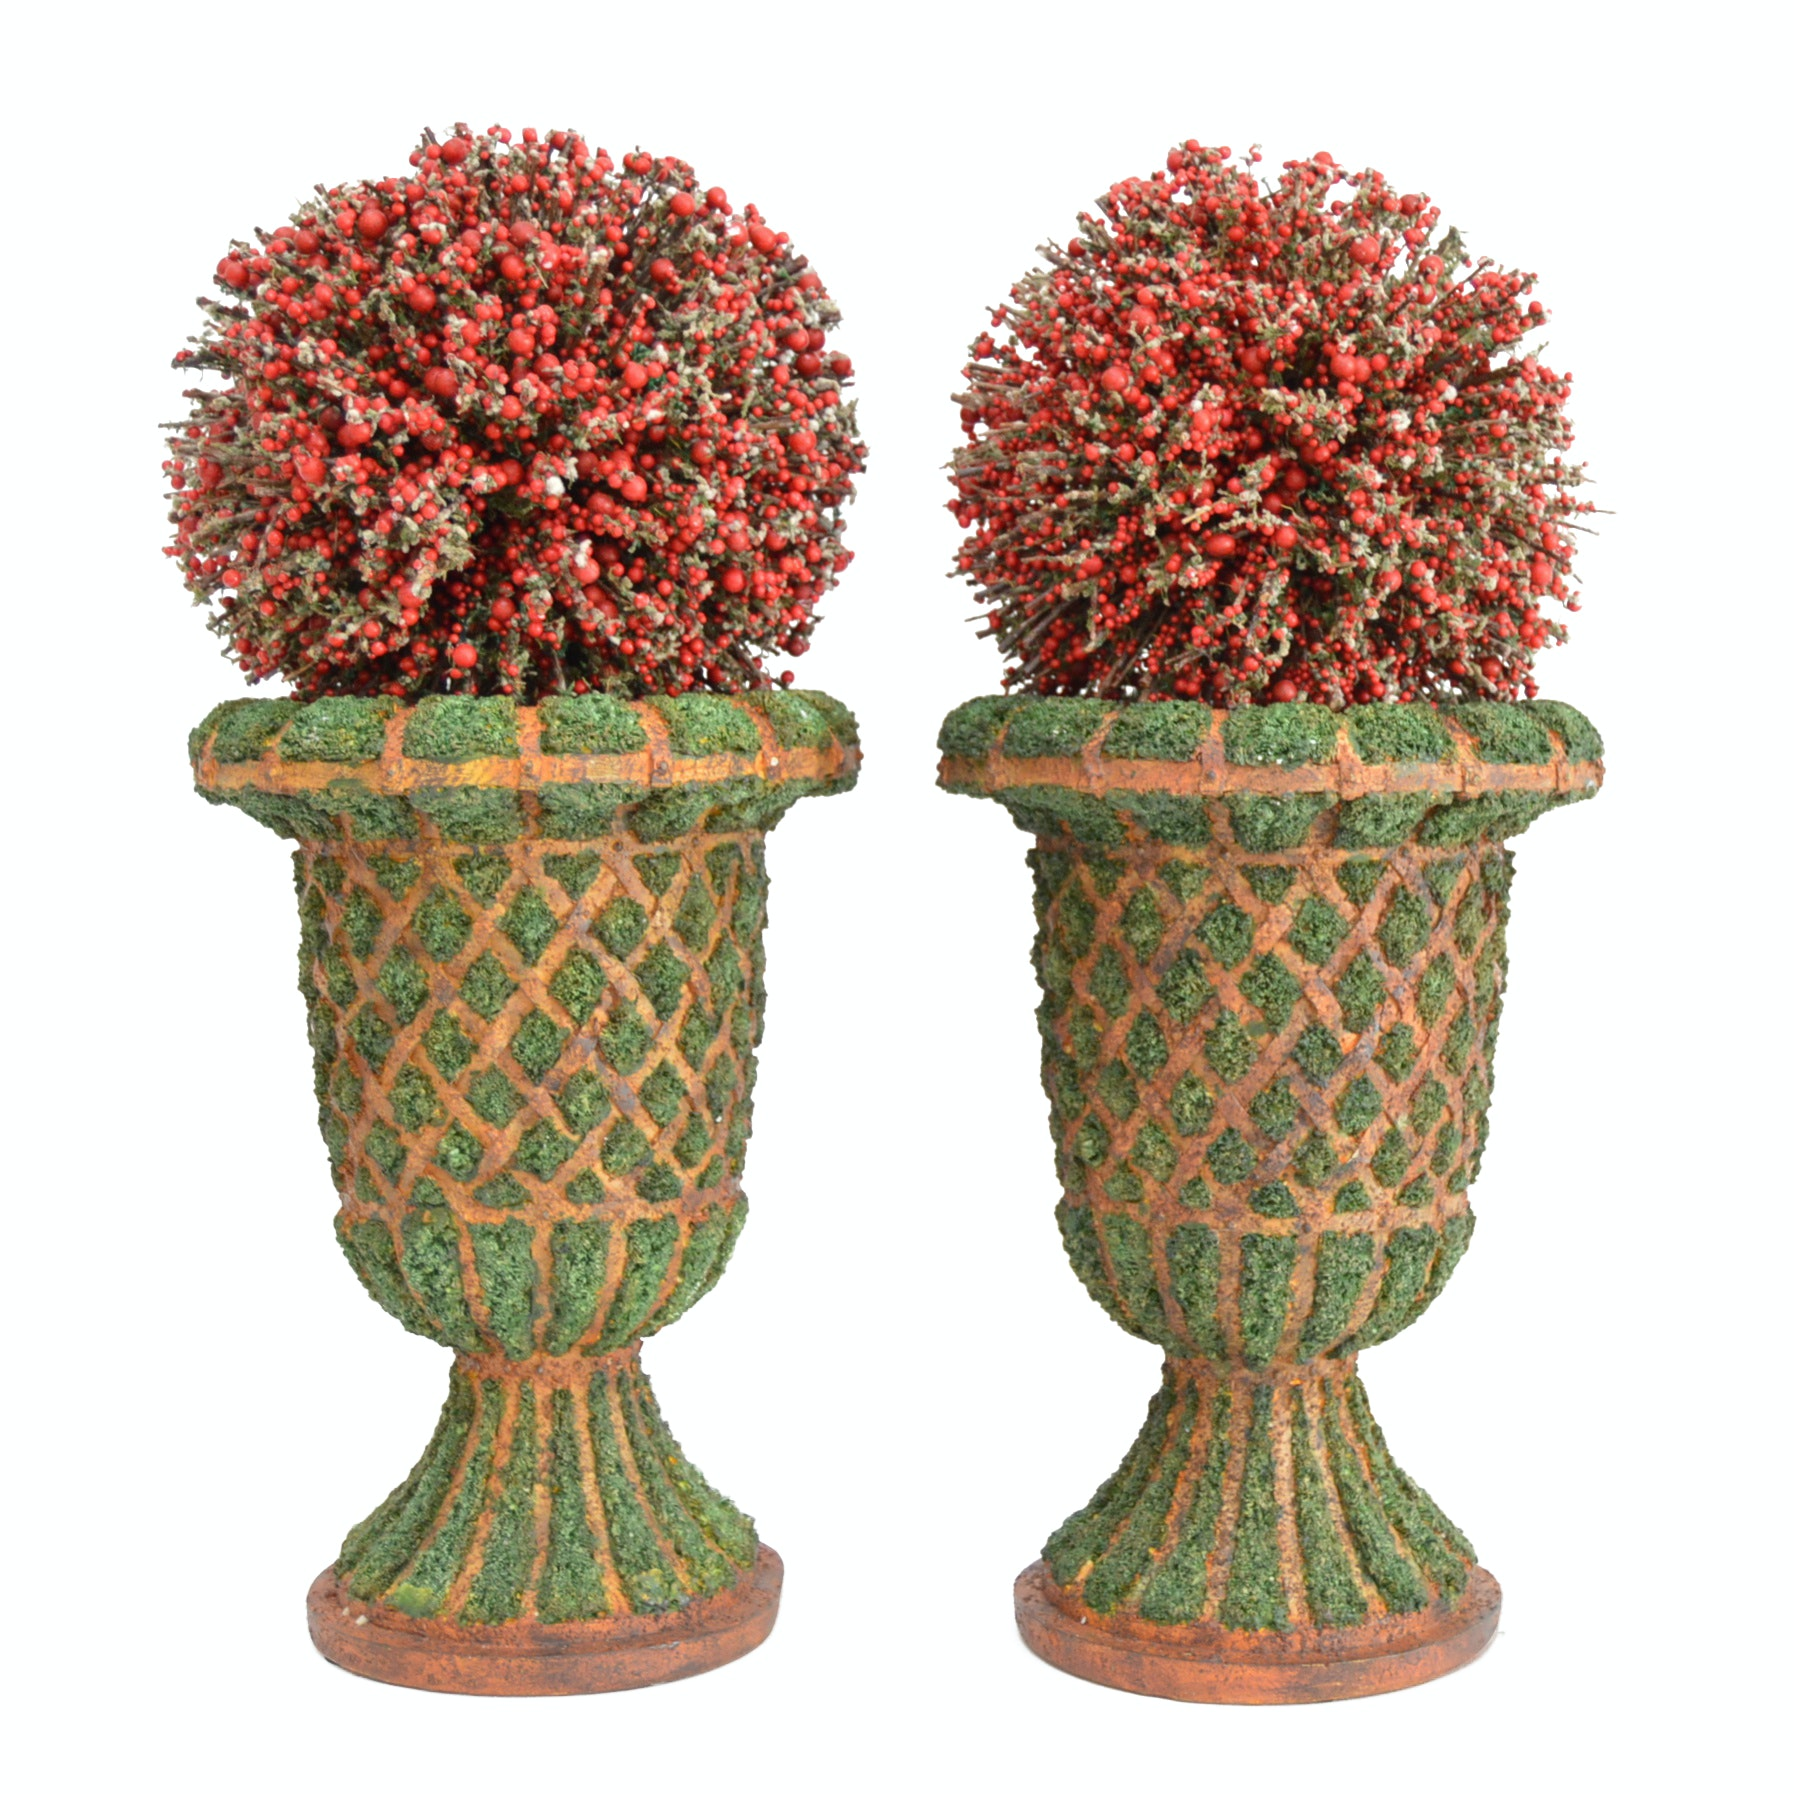 Pair of Berry Ball Topiaries in Moss-Latticed Ceramic Urns